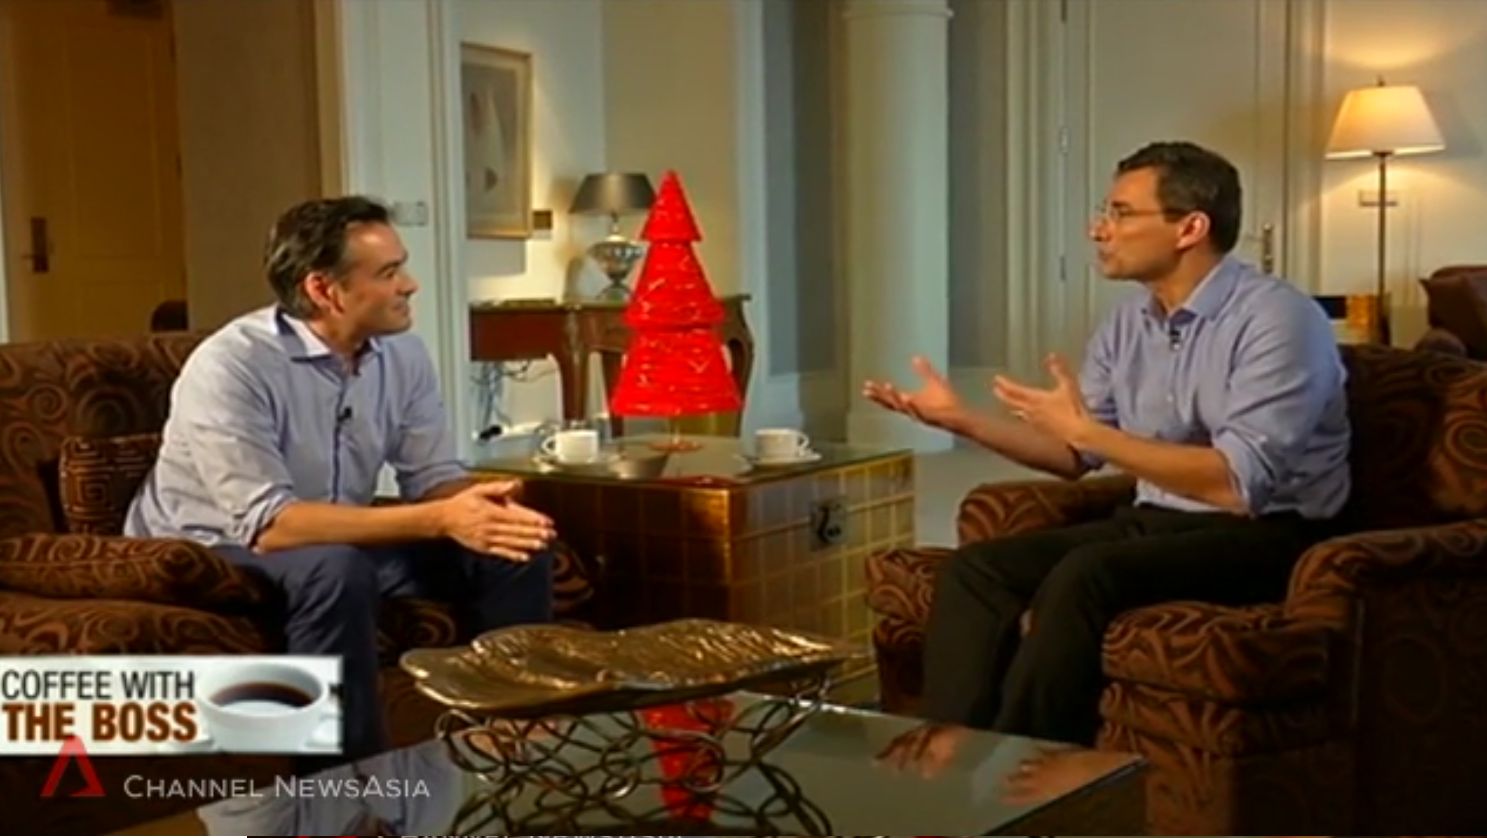 Enrique Cuan, Founder of Pratthanadee, Interviewed on Channel NewsAsia